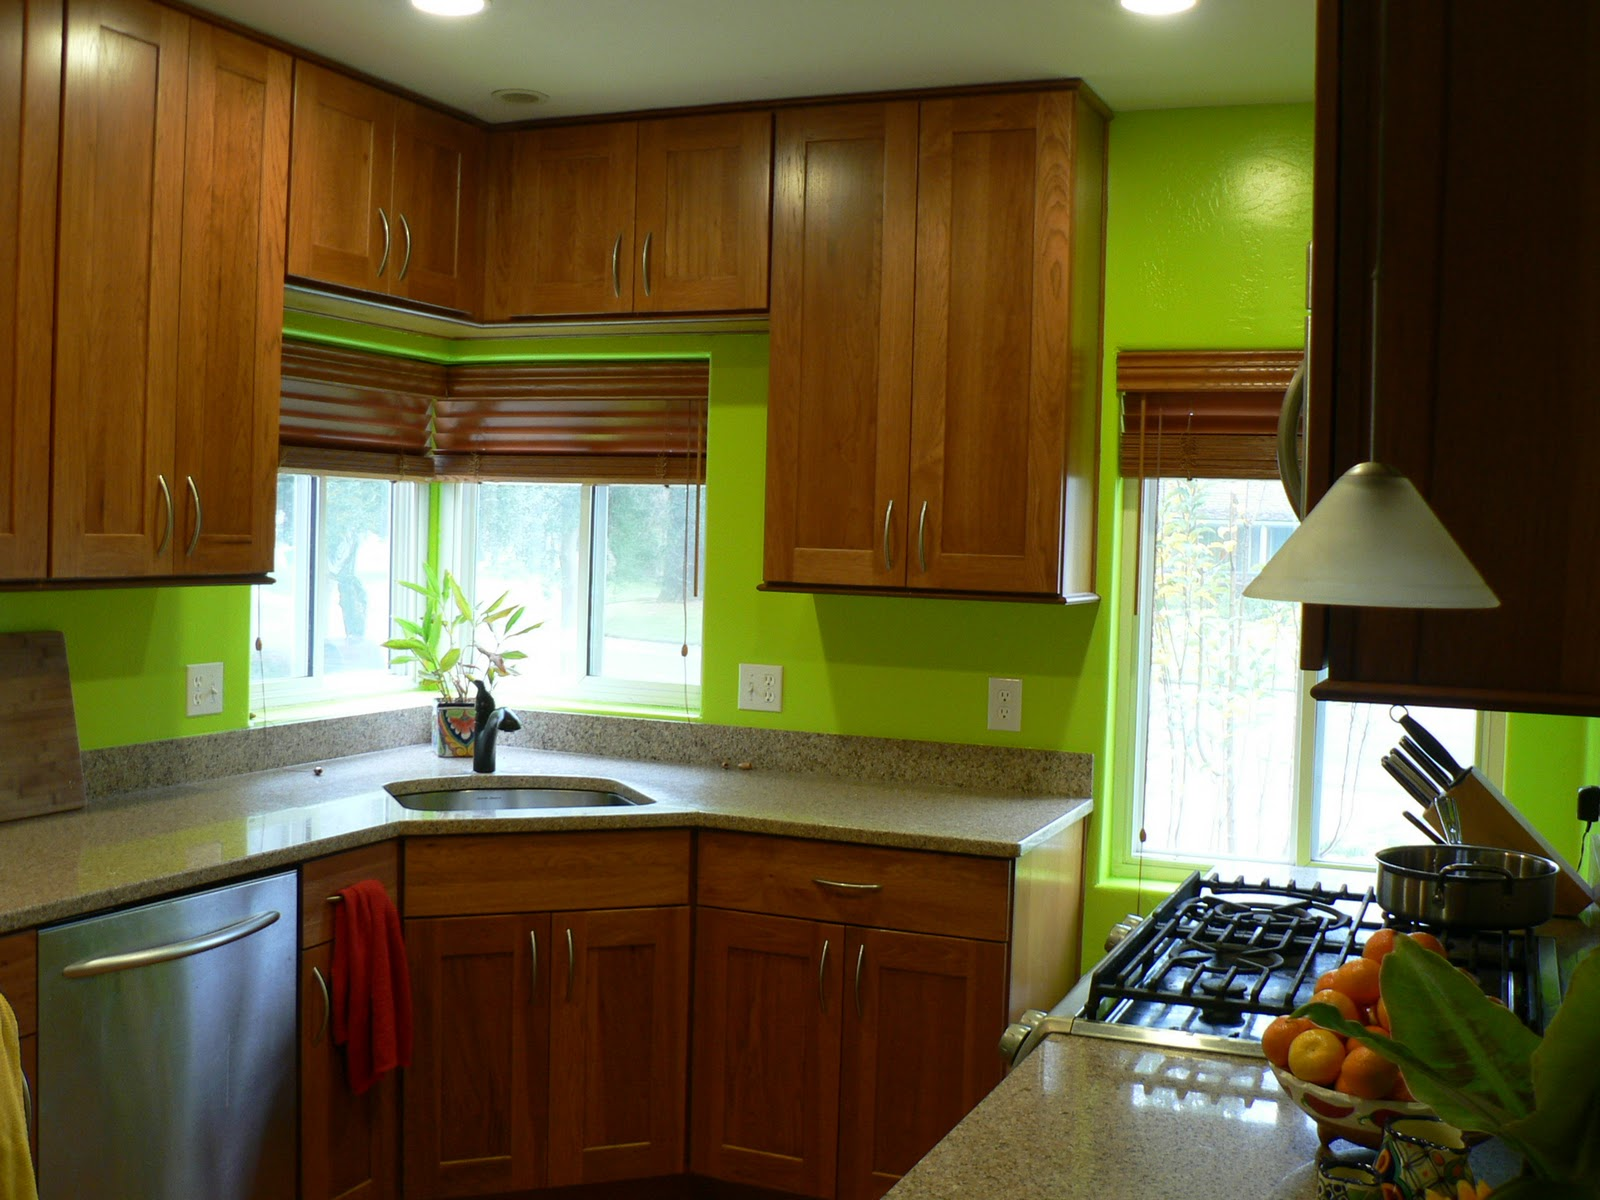 Decorating Kitchen Green Countertops. sea pearl quartzite from ...